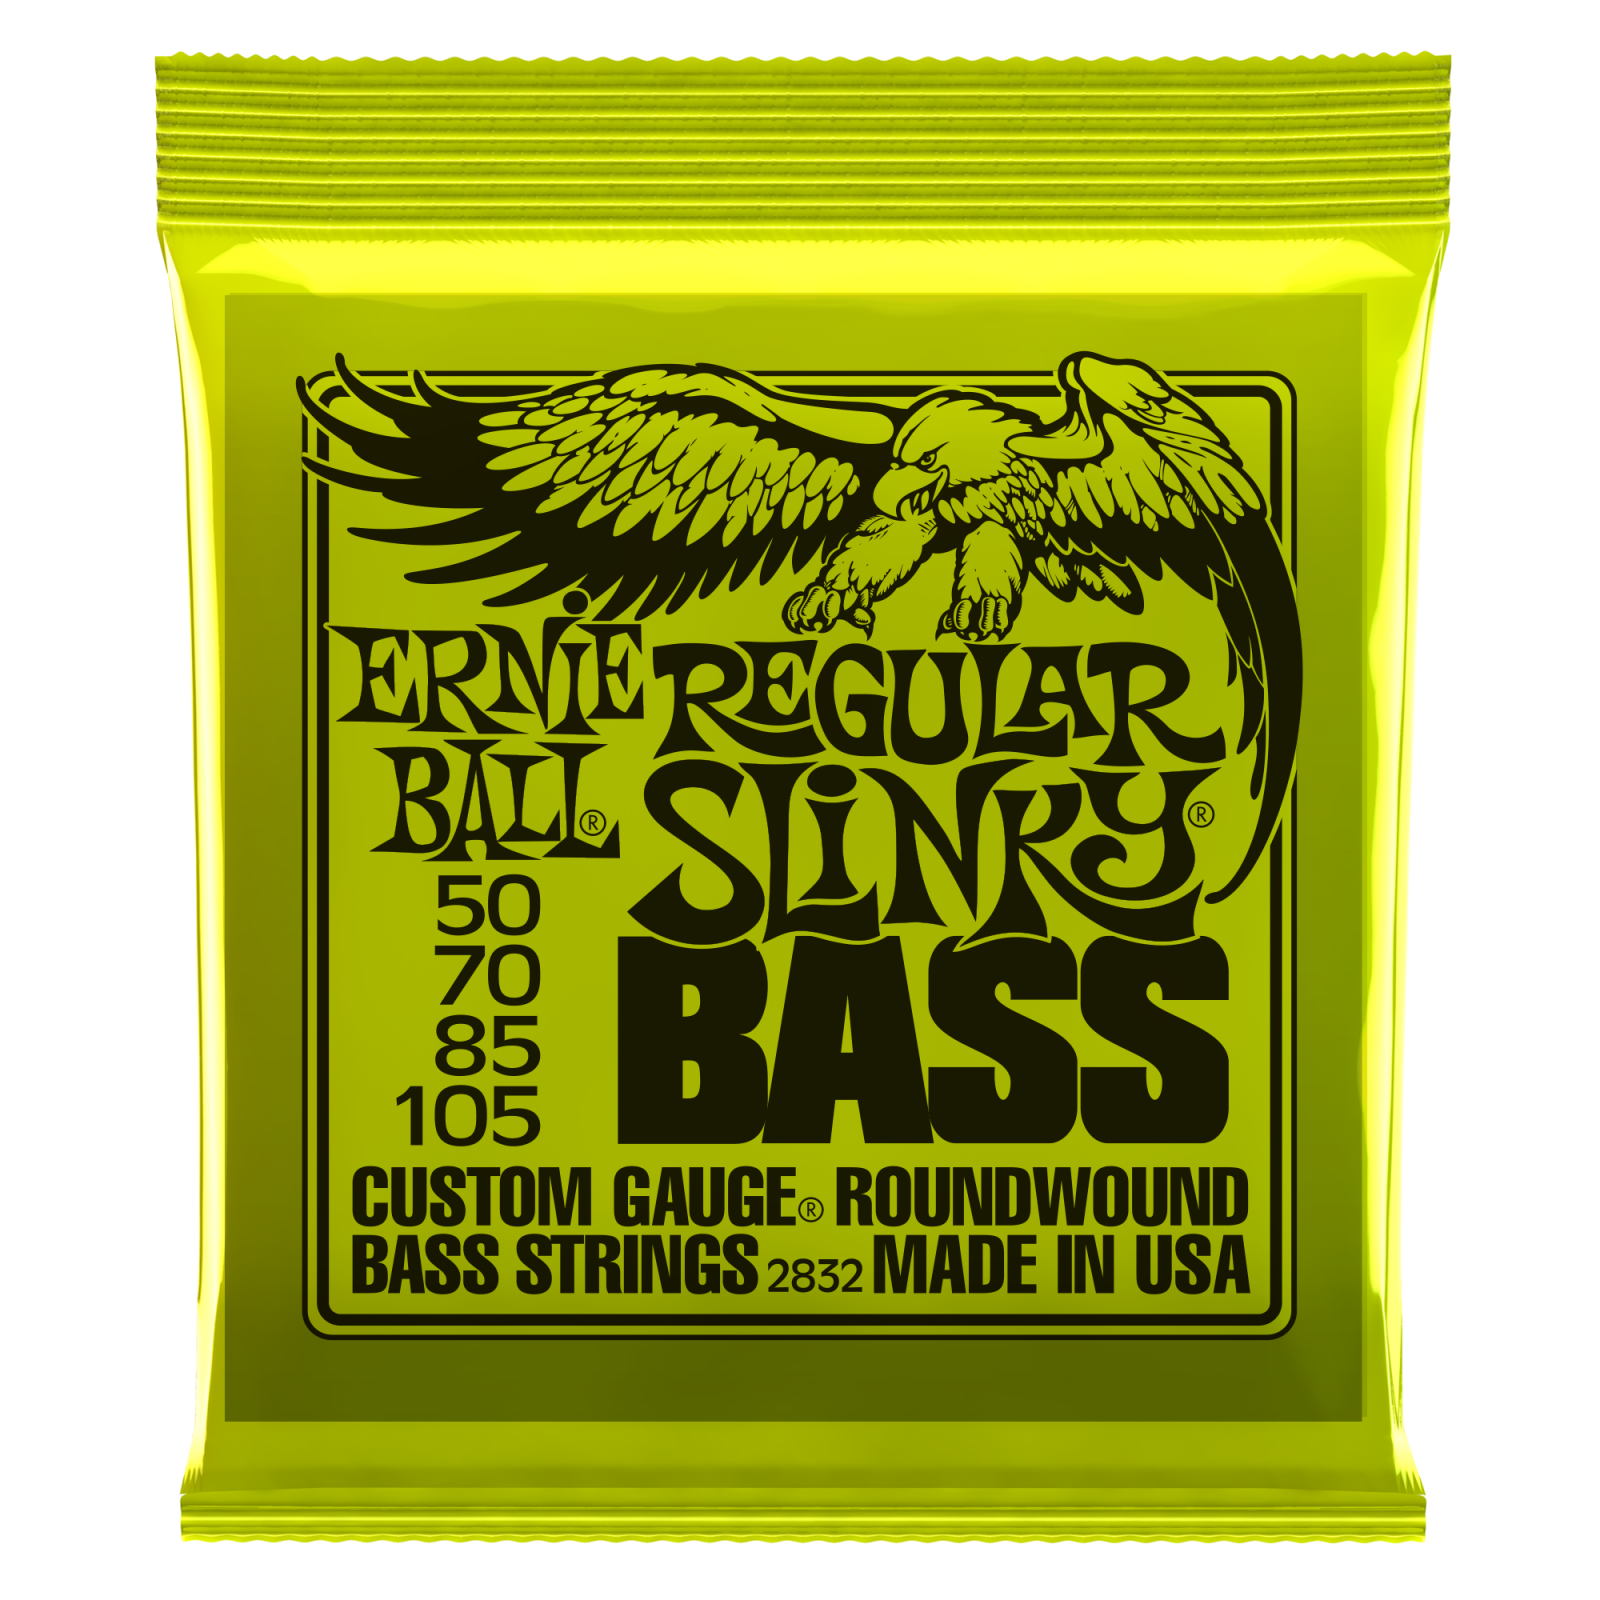 Ernie Ball Regular Slinky 2832 Bass Guitar Strings, Nickel Wound, 50-105